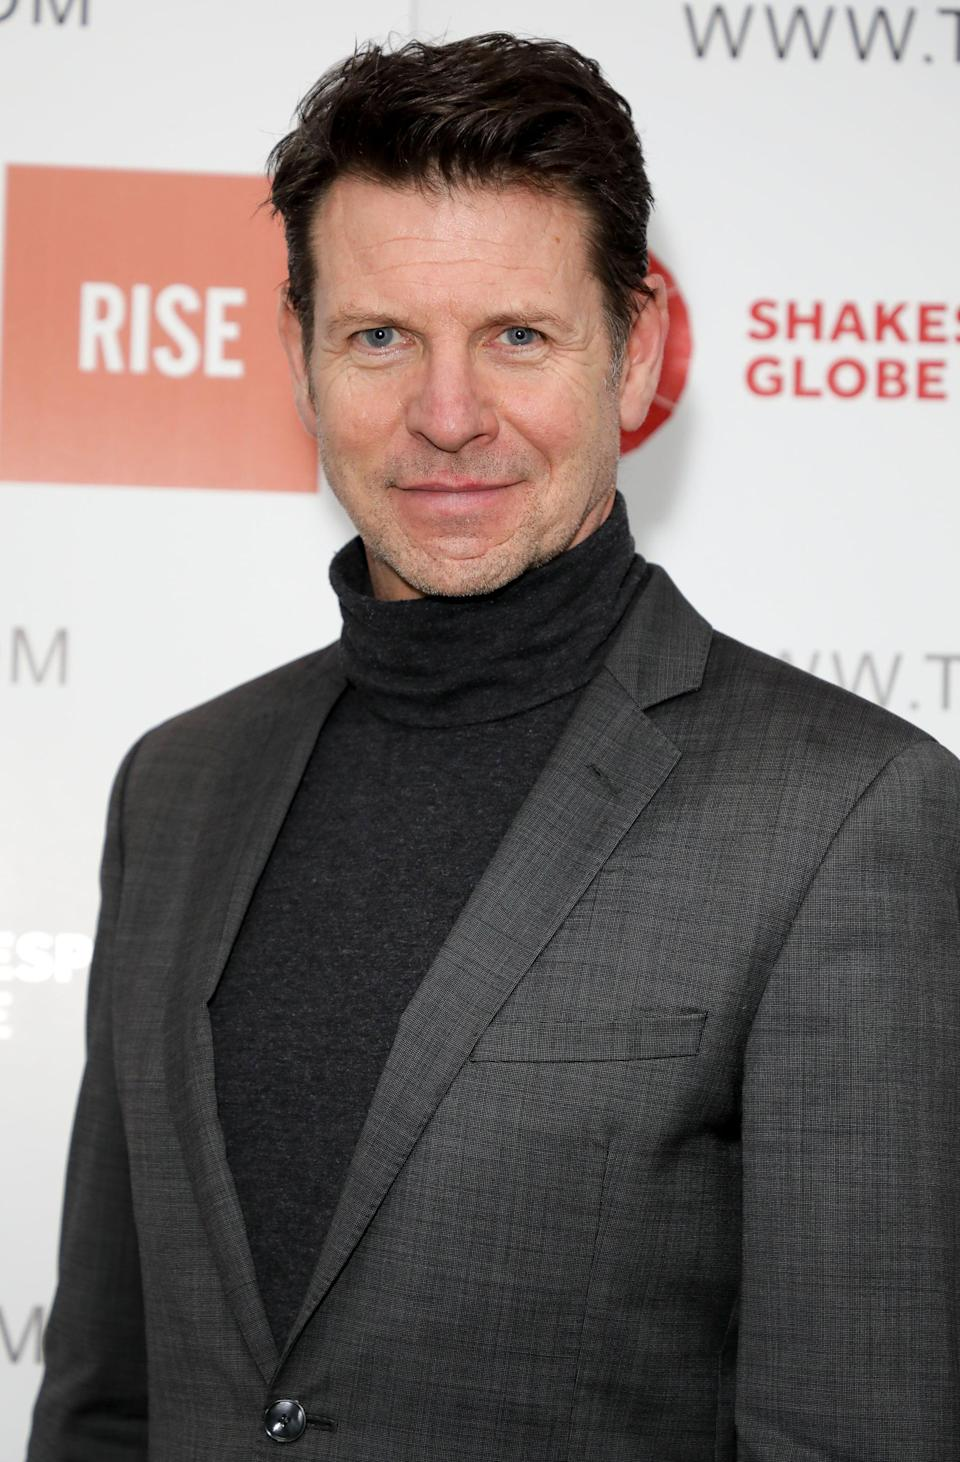 """<p>Amazon announced Owen's casting <a href=""""https://ew.com/tv/amazon-lord-of-the-rings-cast/"""" class=""""link rapid-noclick-resp"""" rel=""""nofollow noopener"""" target=""""_blank"""" data-ylk=""""slk:along with 20 other actors"""">along with 20 other actors</a> on Dec. 3. </p>"""